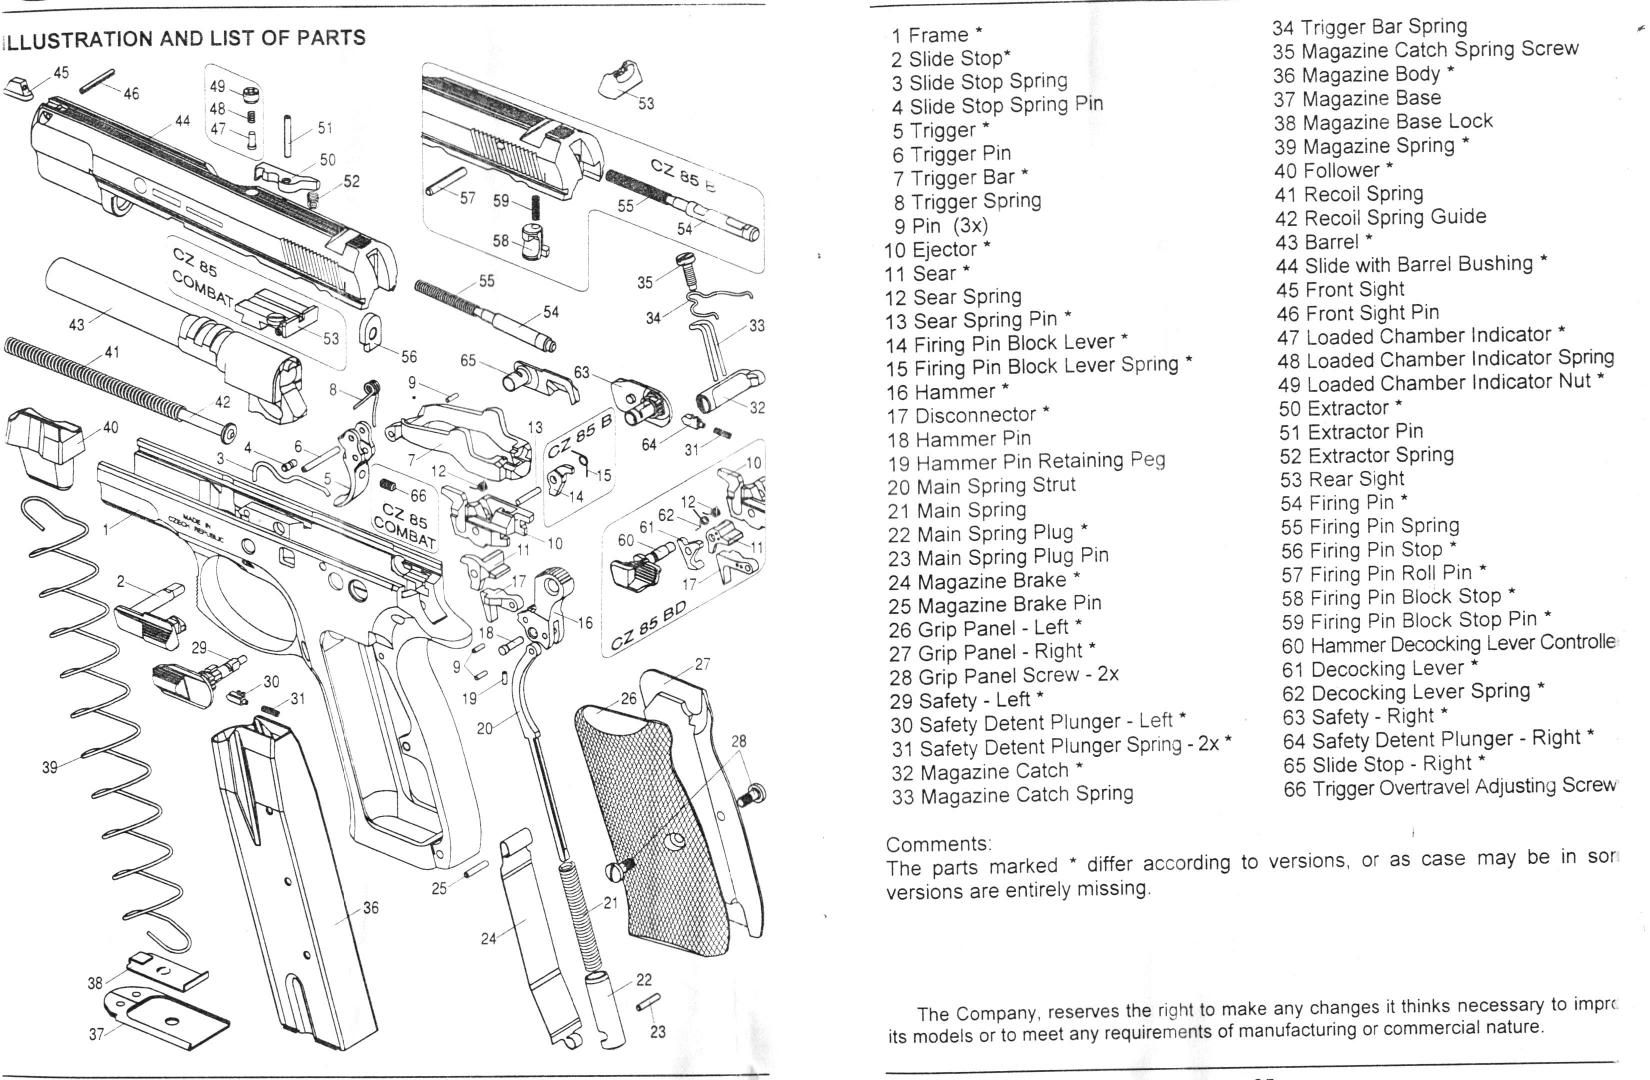 Cesk Zbrojovka Cz 75 Semi Auto 83 Schematic Marksmenship Remington 870 Diagram Submited Images